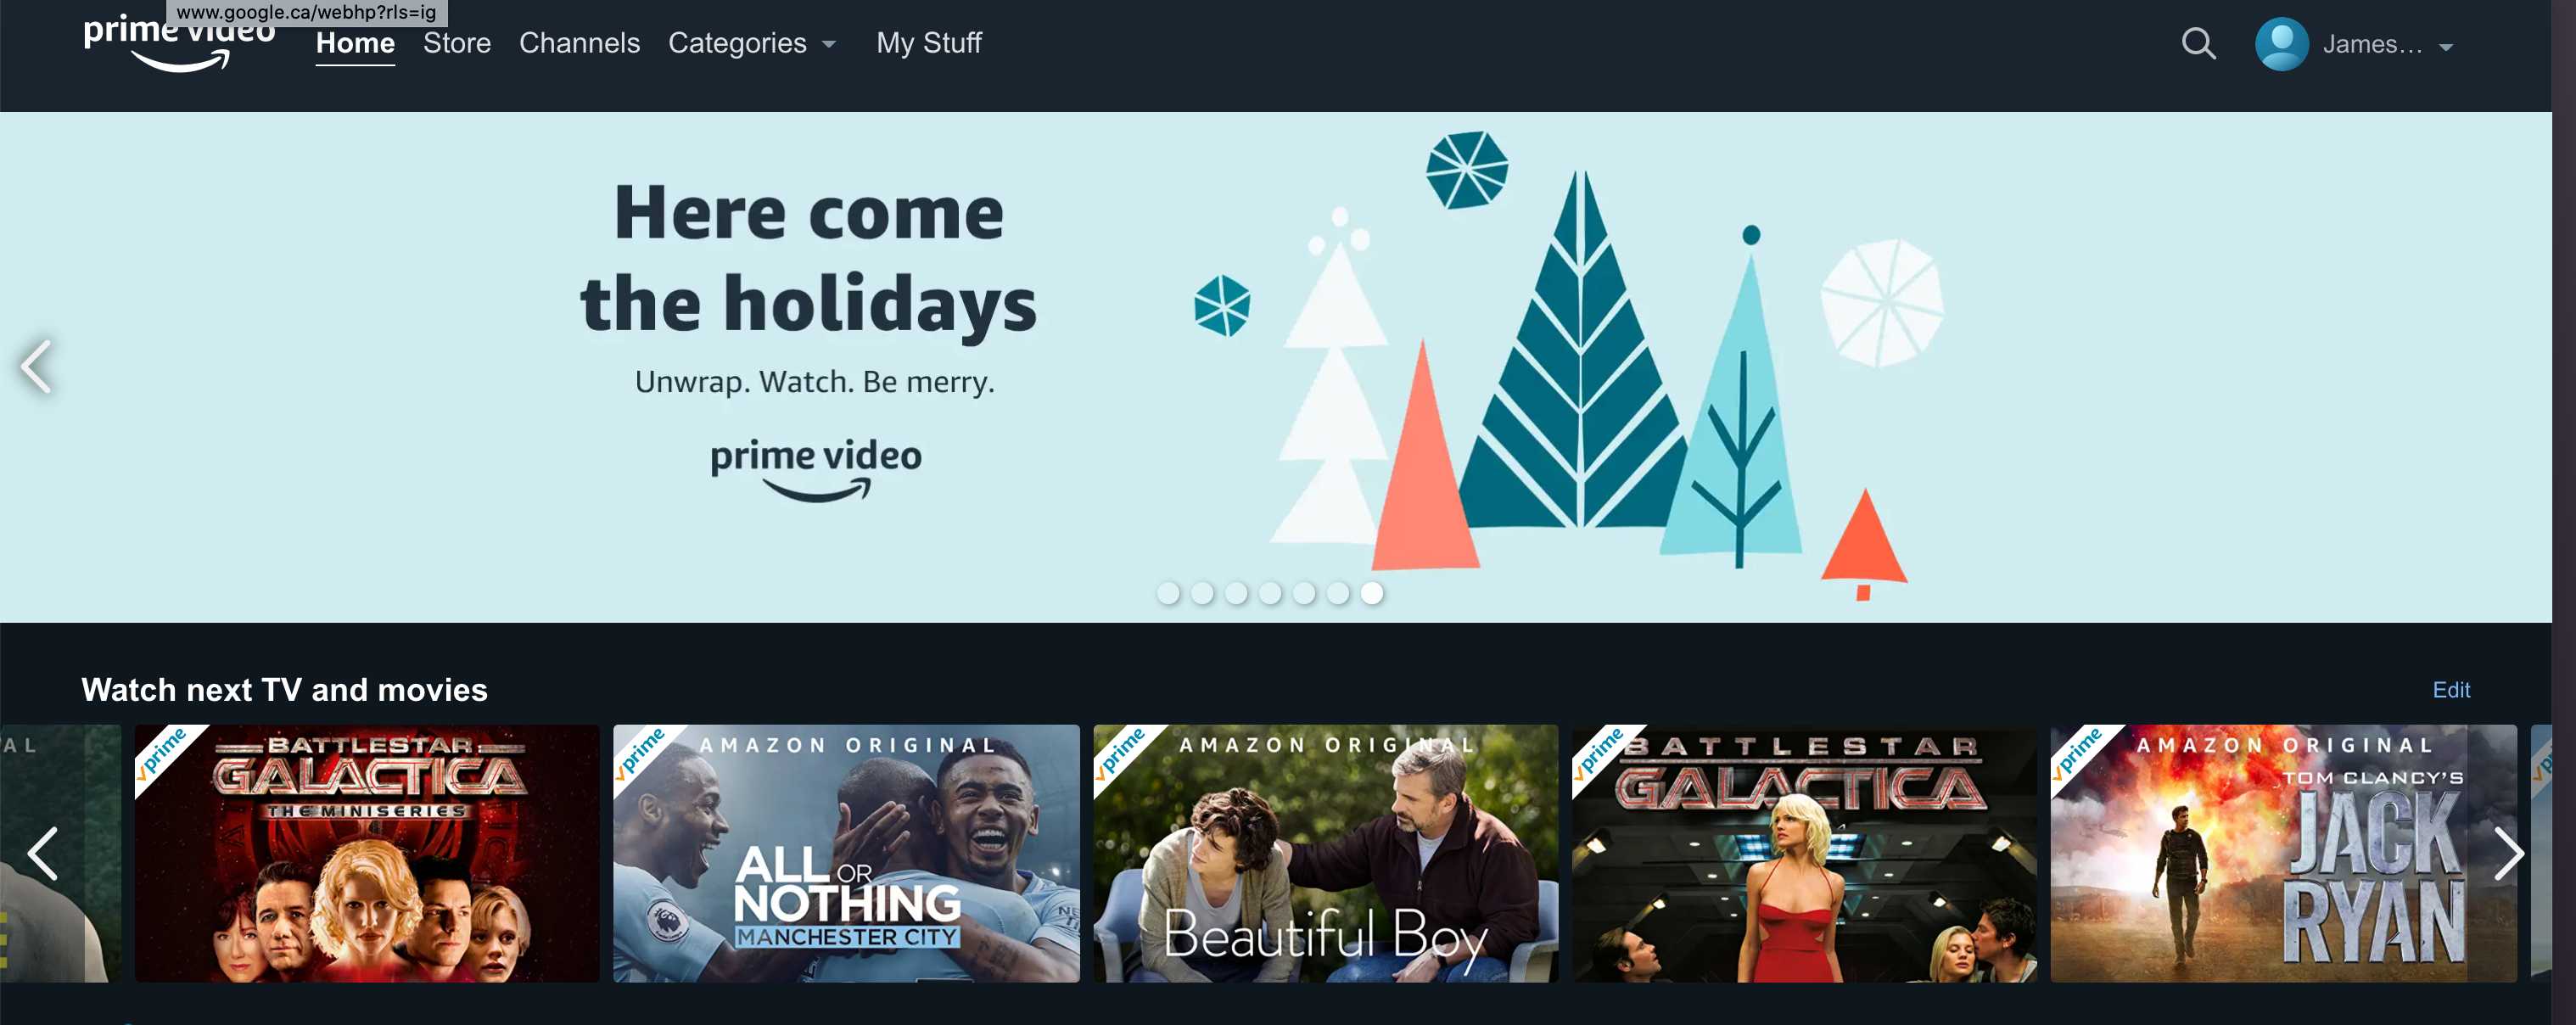 Amazon Prime homescreen